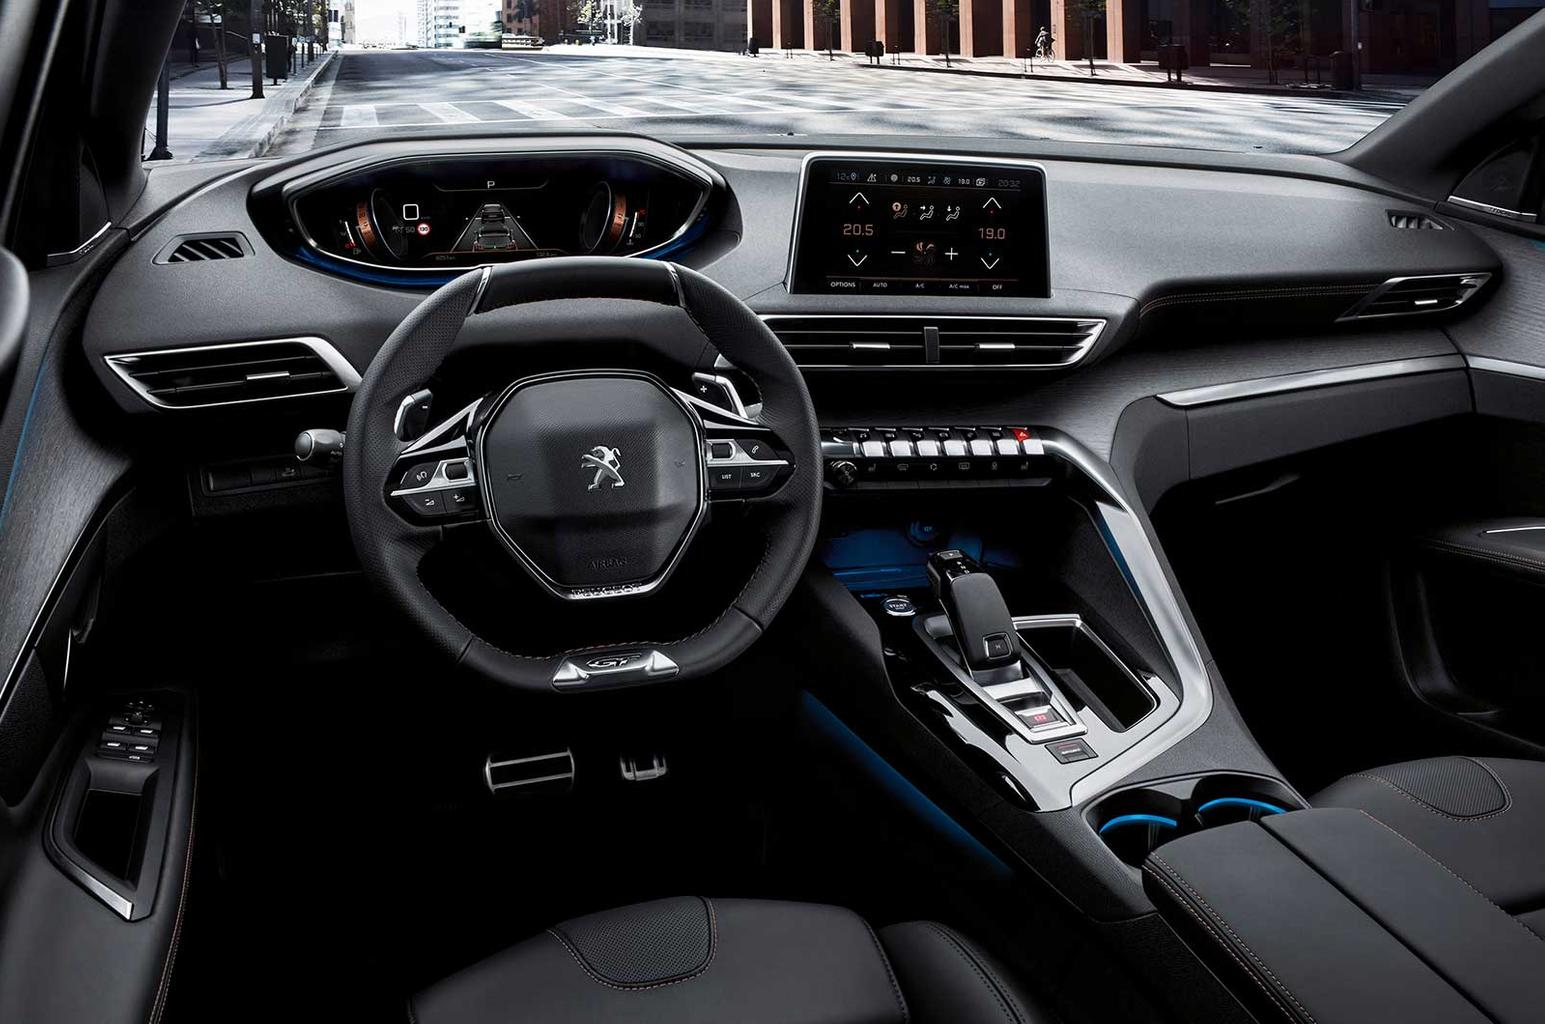 New Peugeot 5008 - everything you need to know